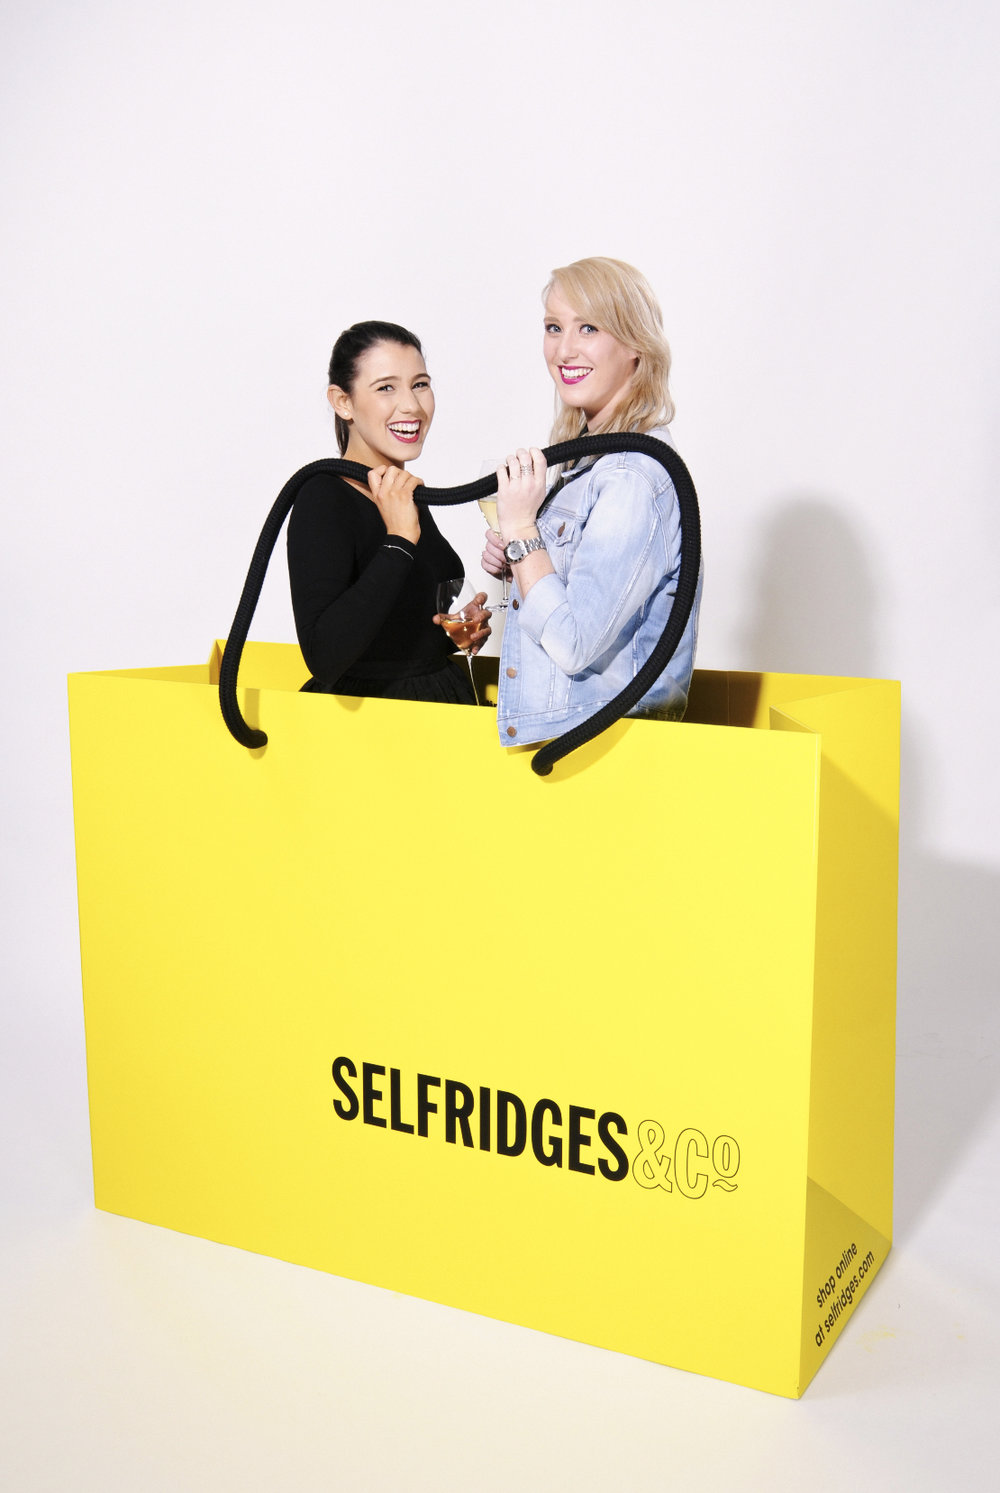 SELFRIDGES MARYLEBONE-094 copy.jpg